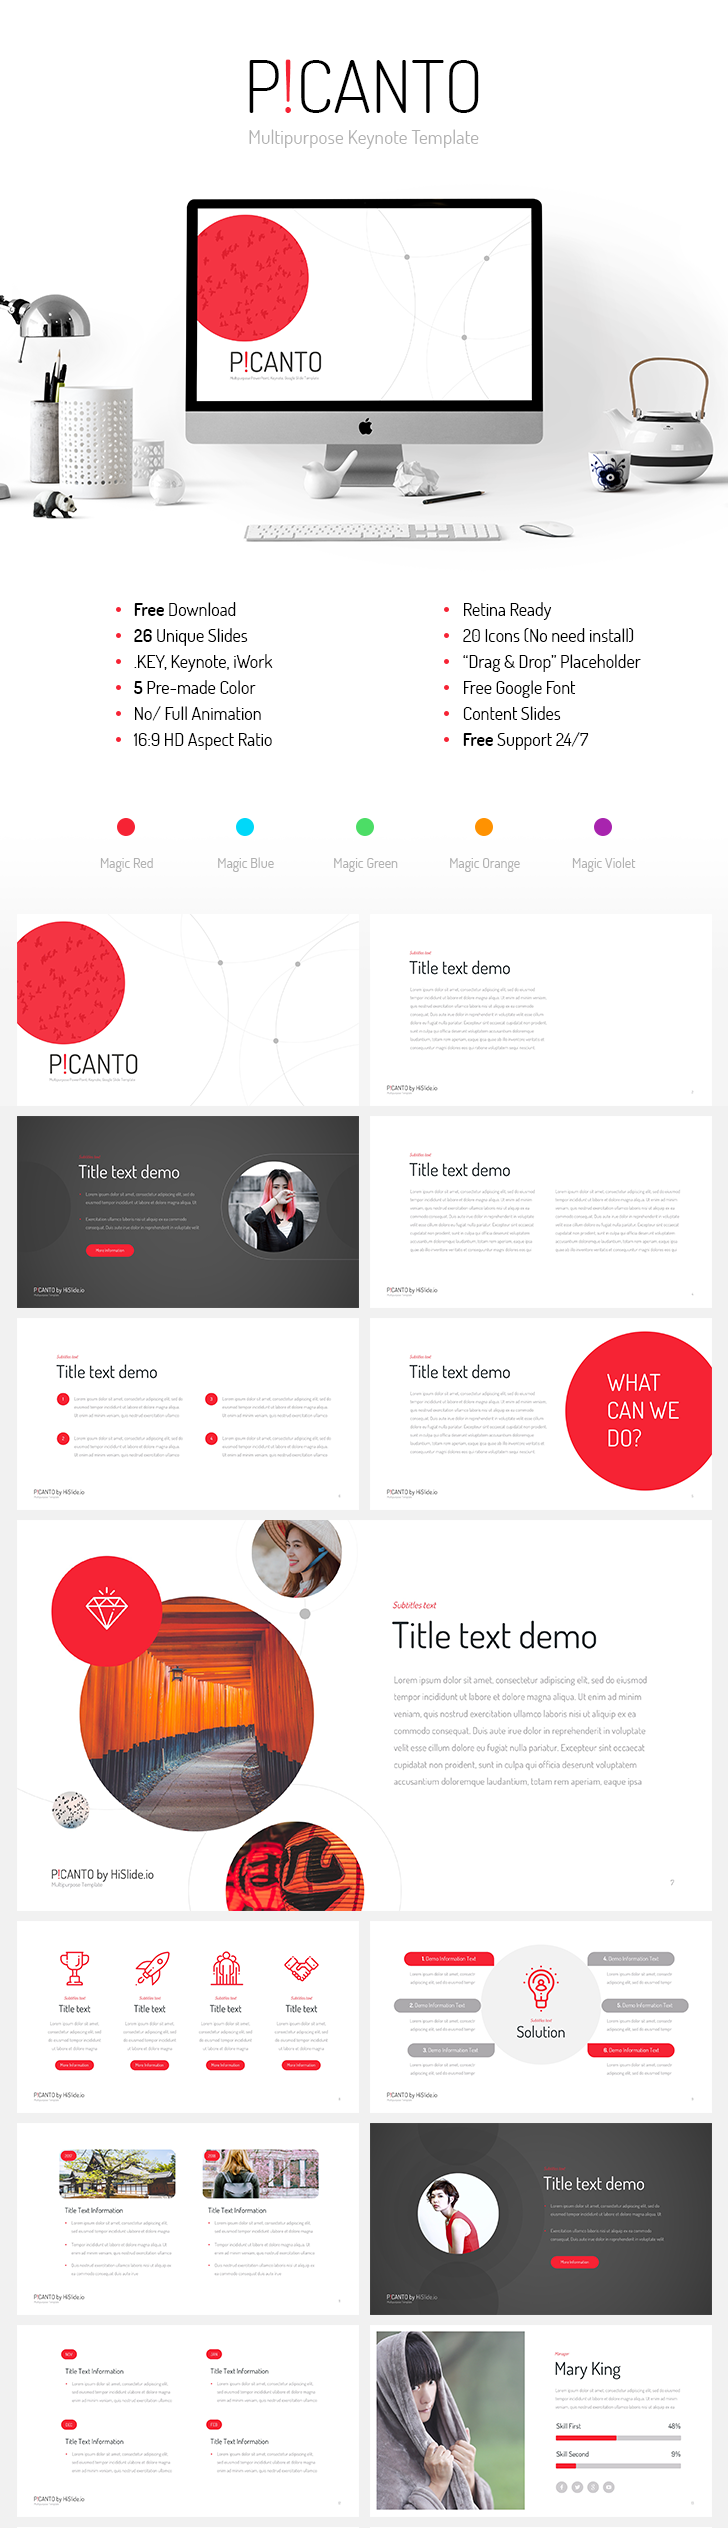 Picanto-Keynote-template-free-download